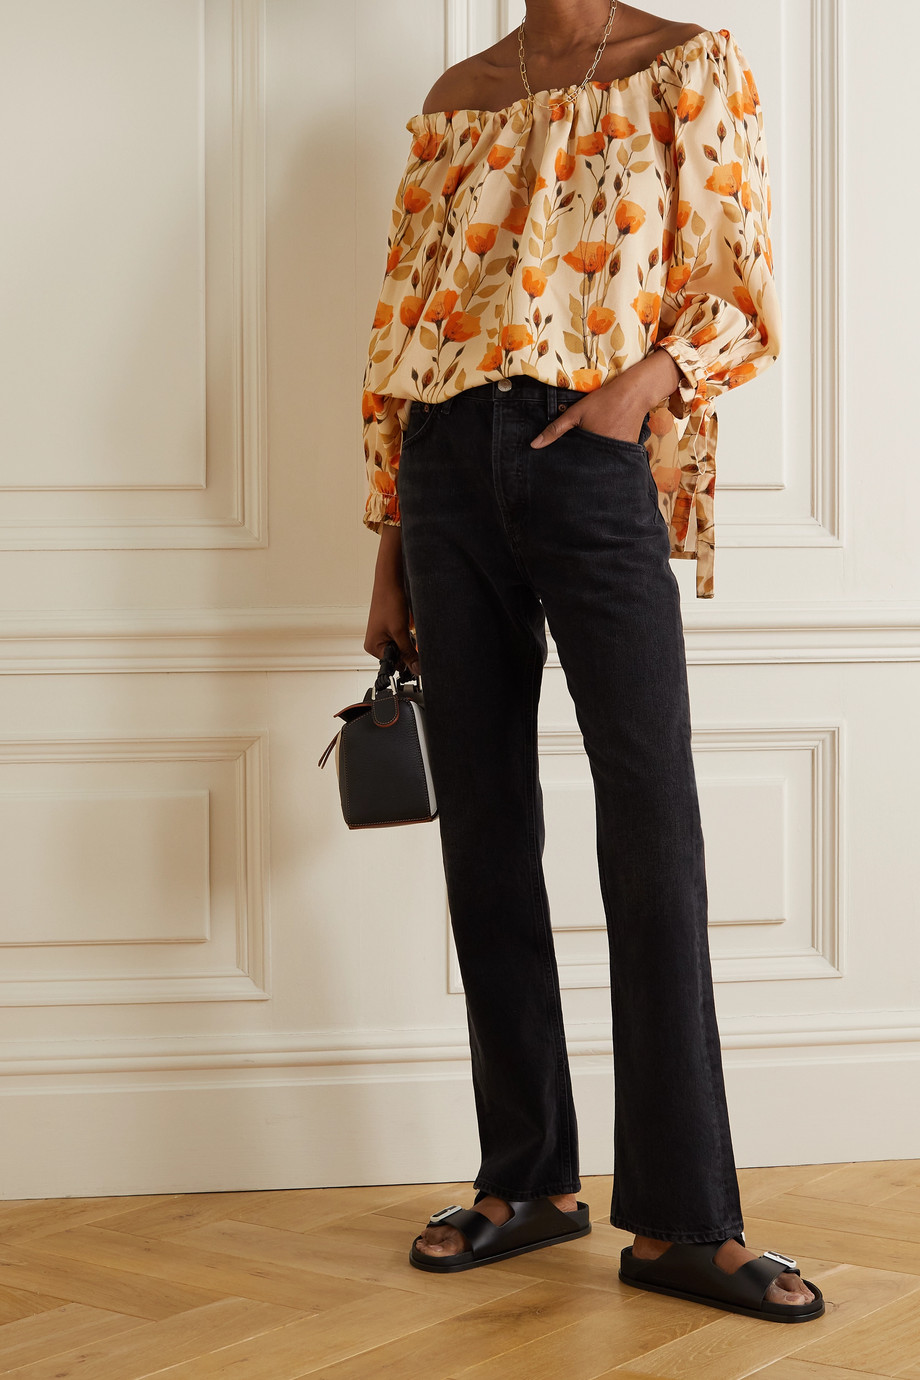 MOTHER OF PEARL + NET SUSTAIN Bobbie gathered floral-print Lyocell-twill blouse